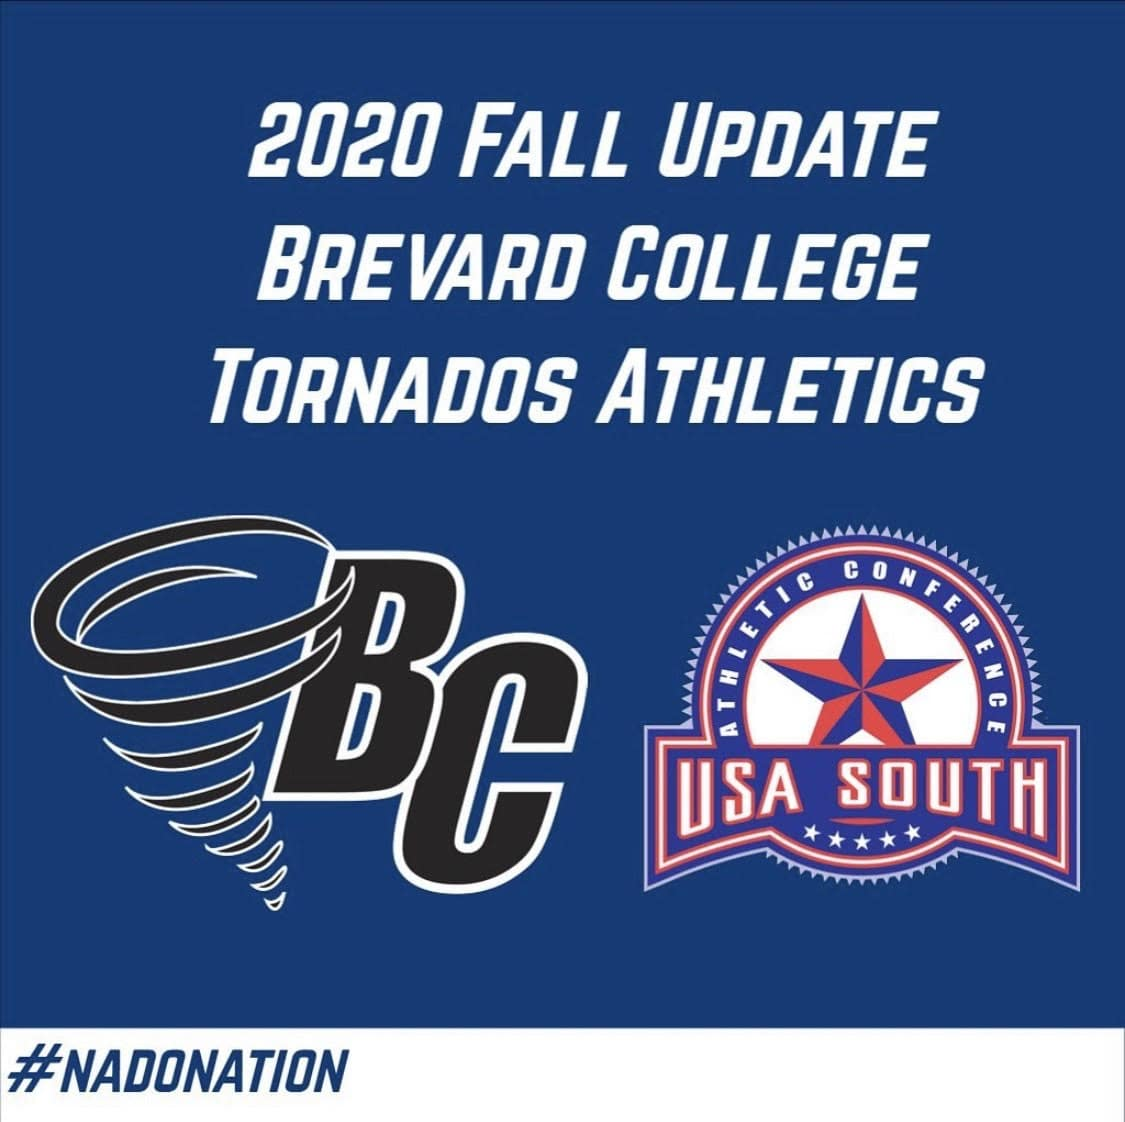 2020 Fall Update Social Graphic